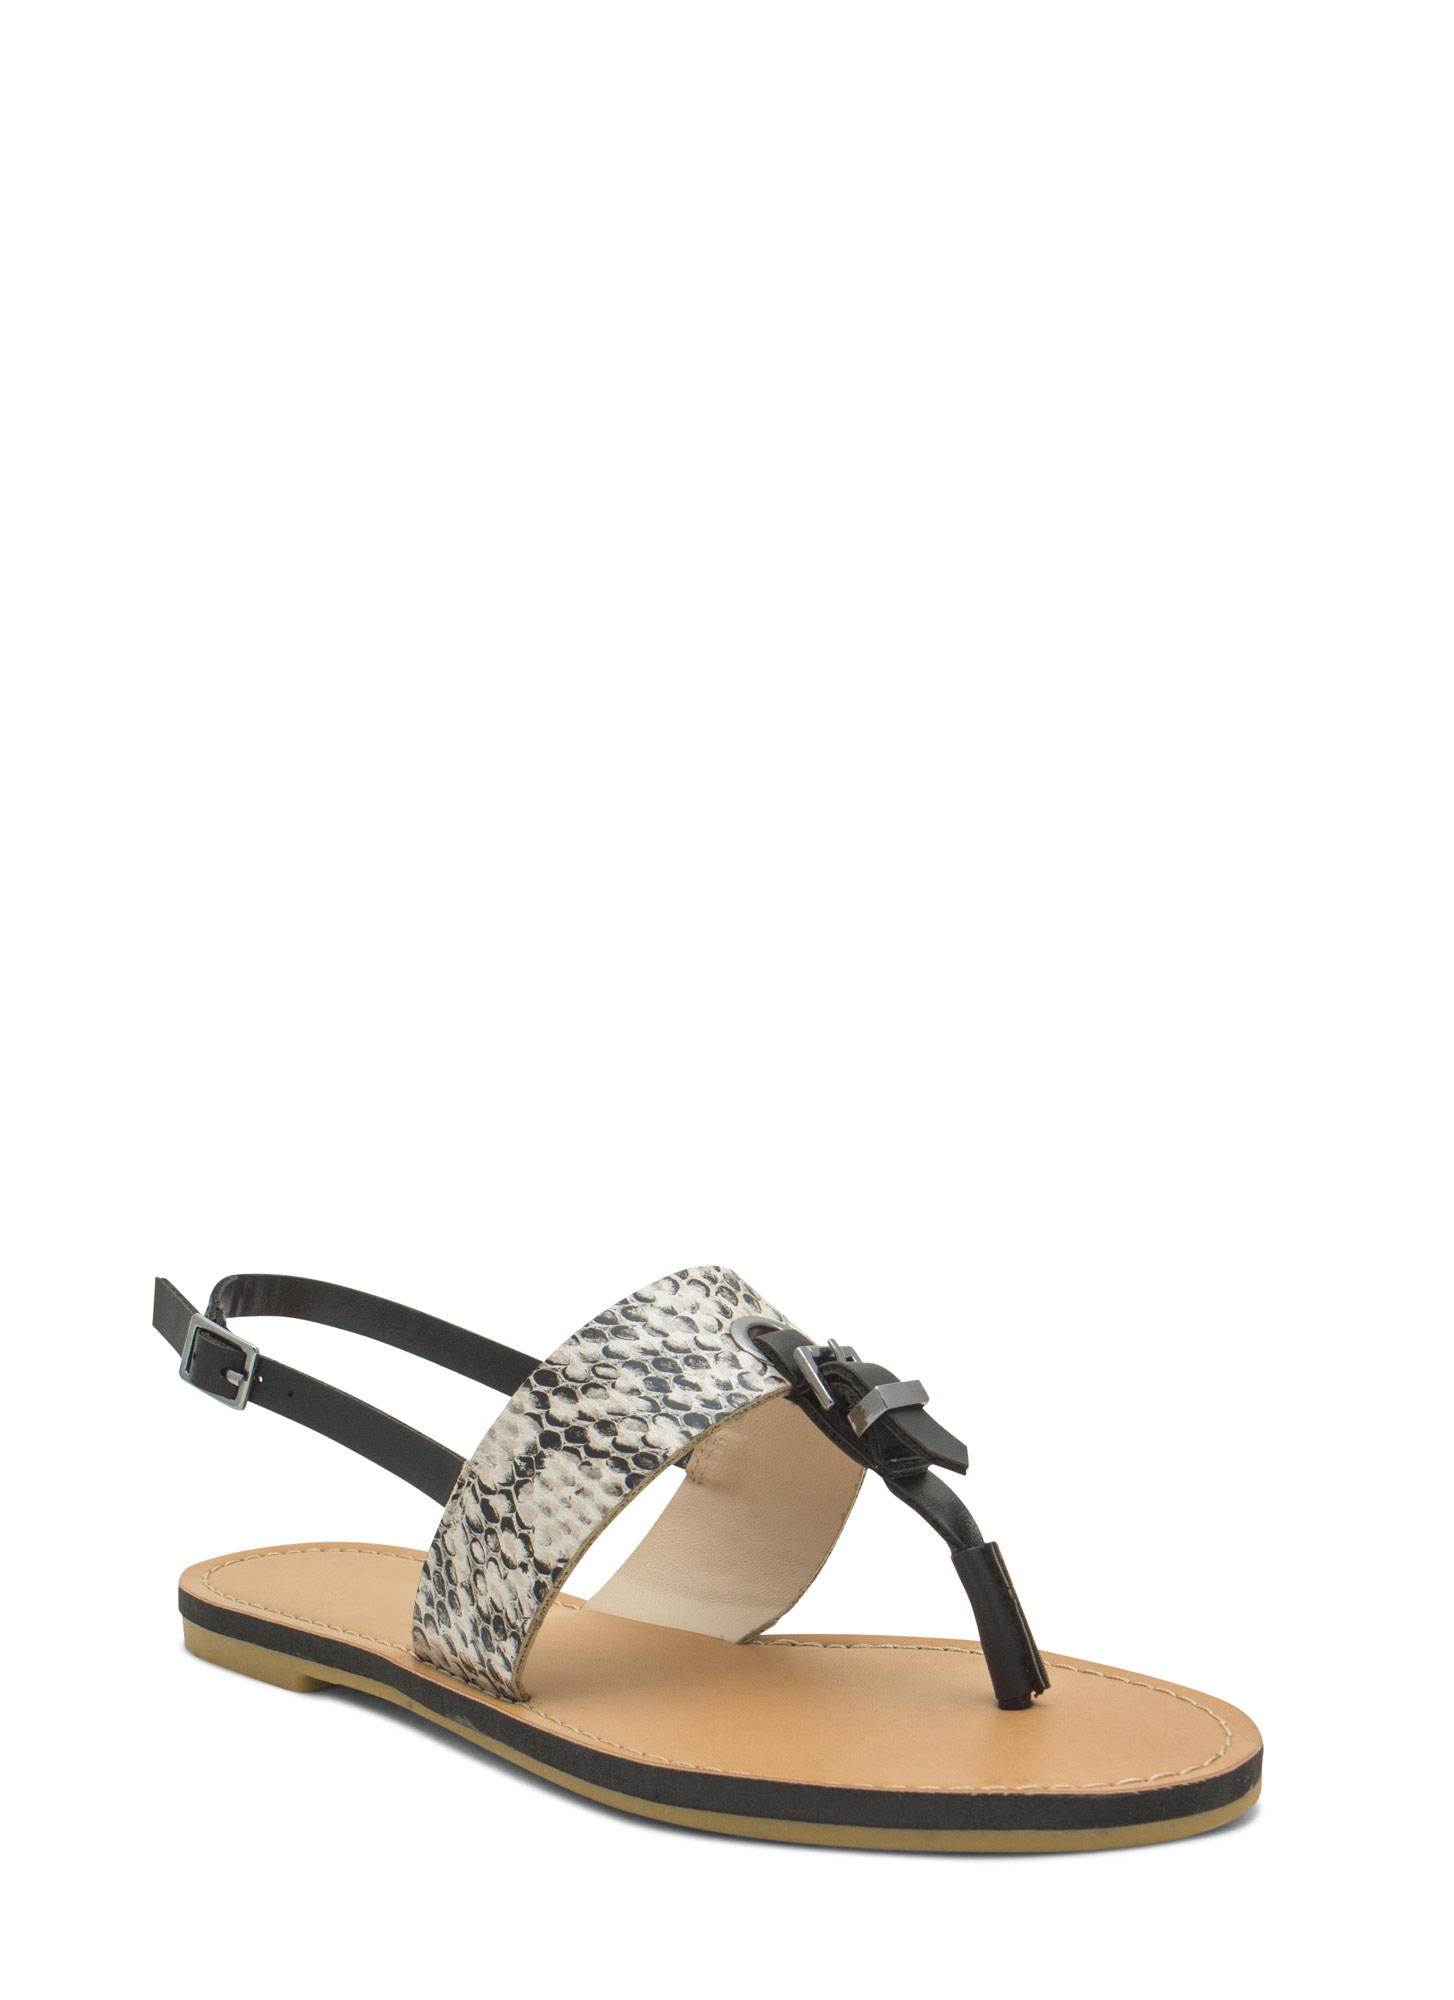 All Buckled In Faux Leather Thong Sandals NATURAL